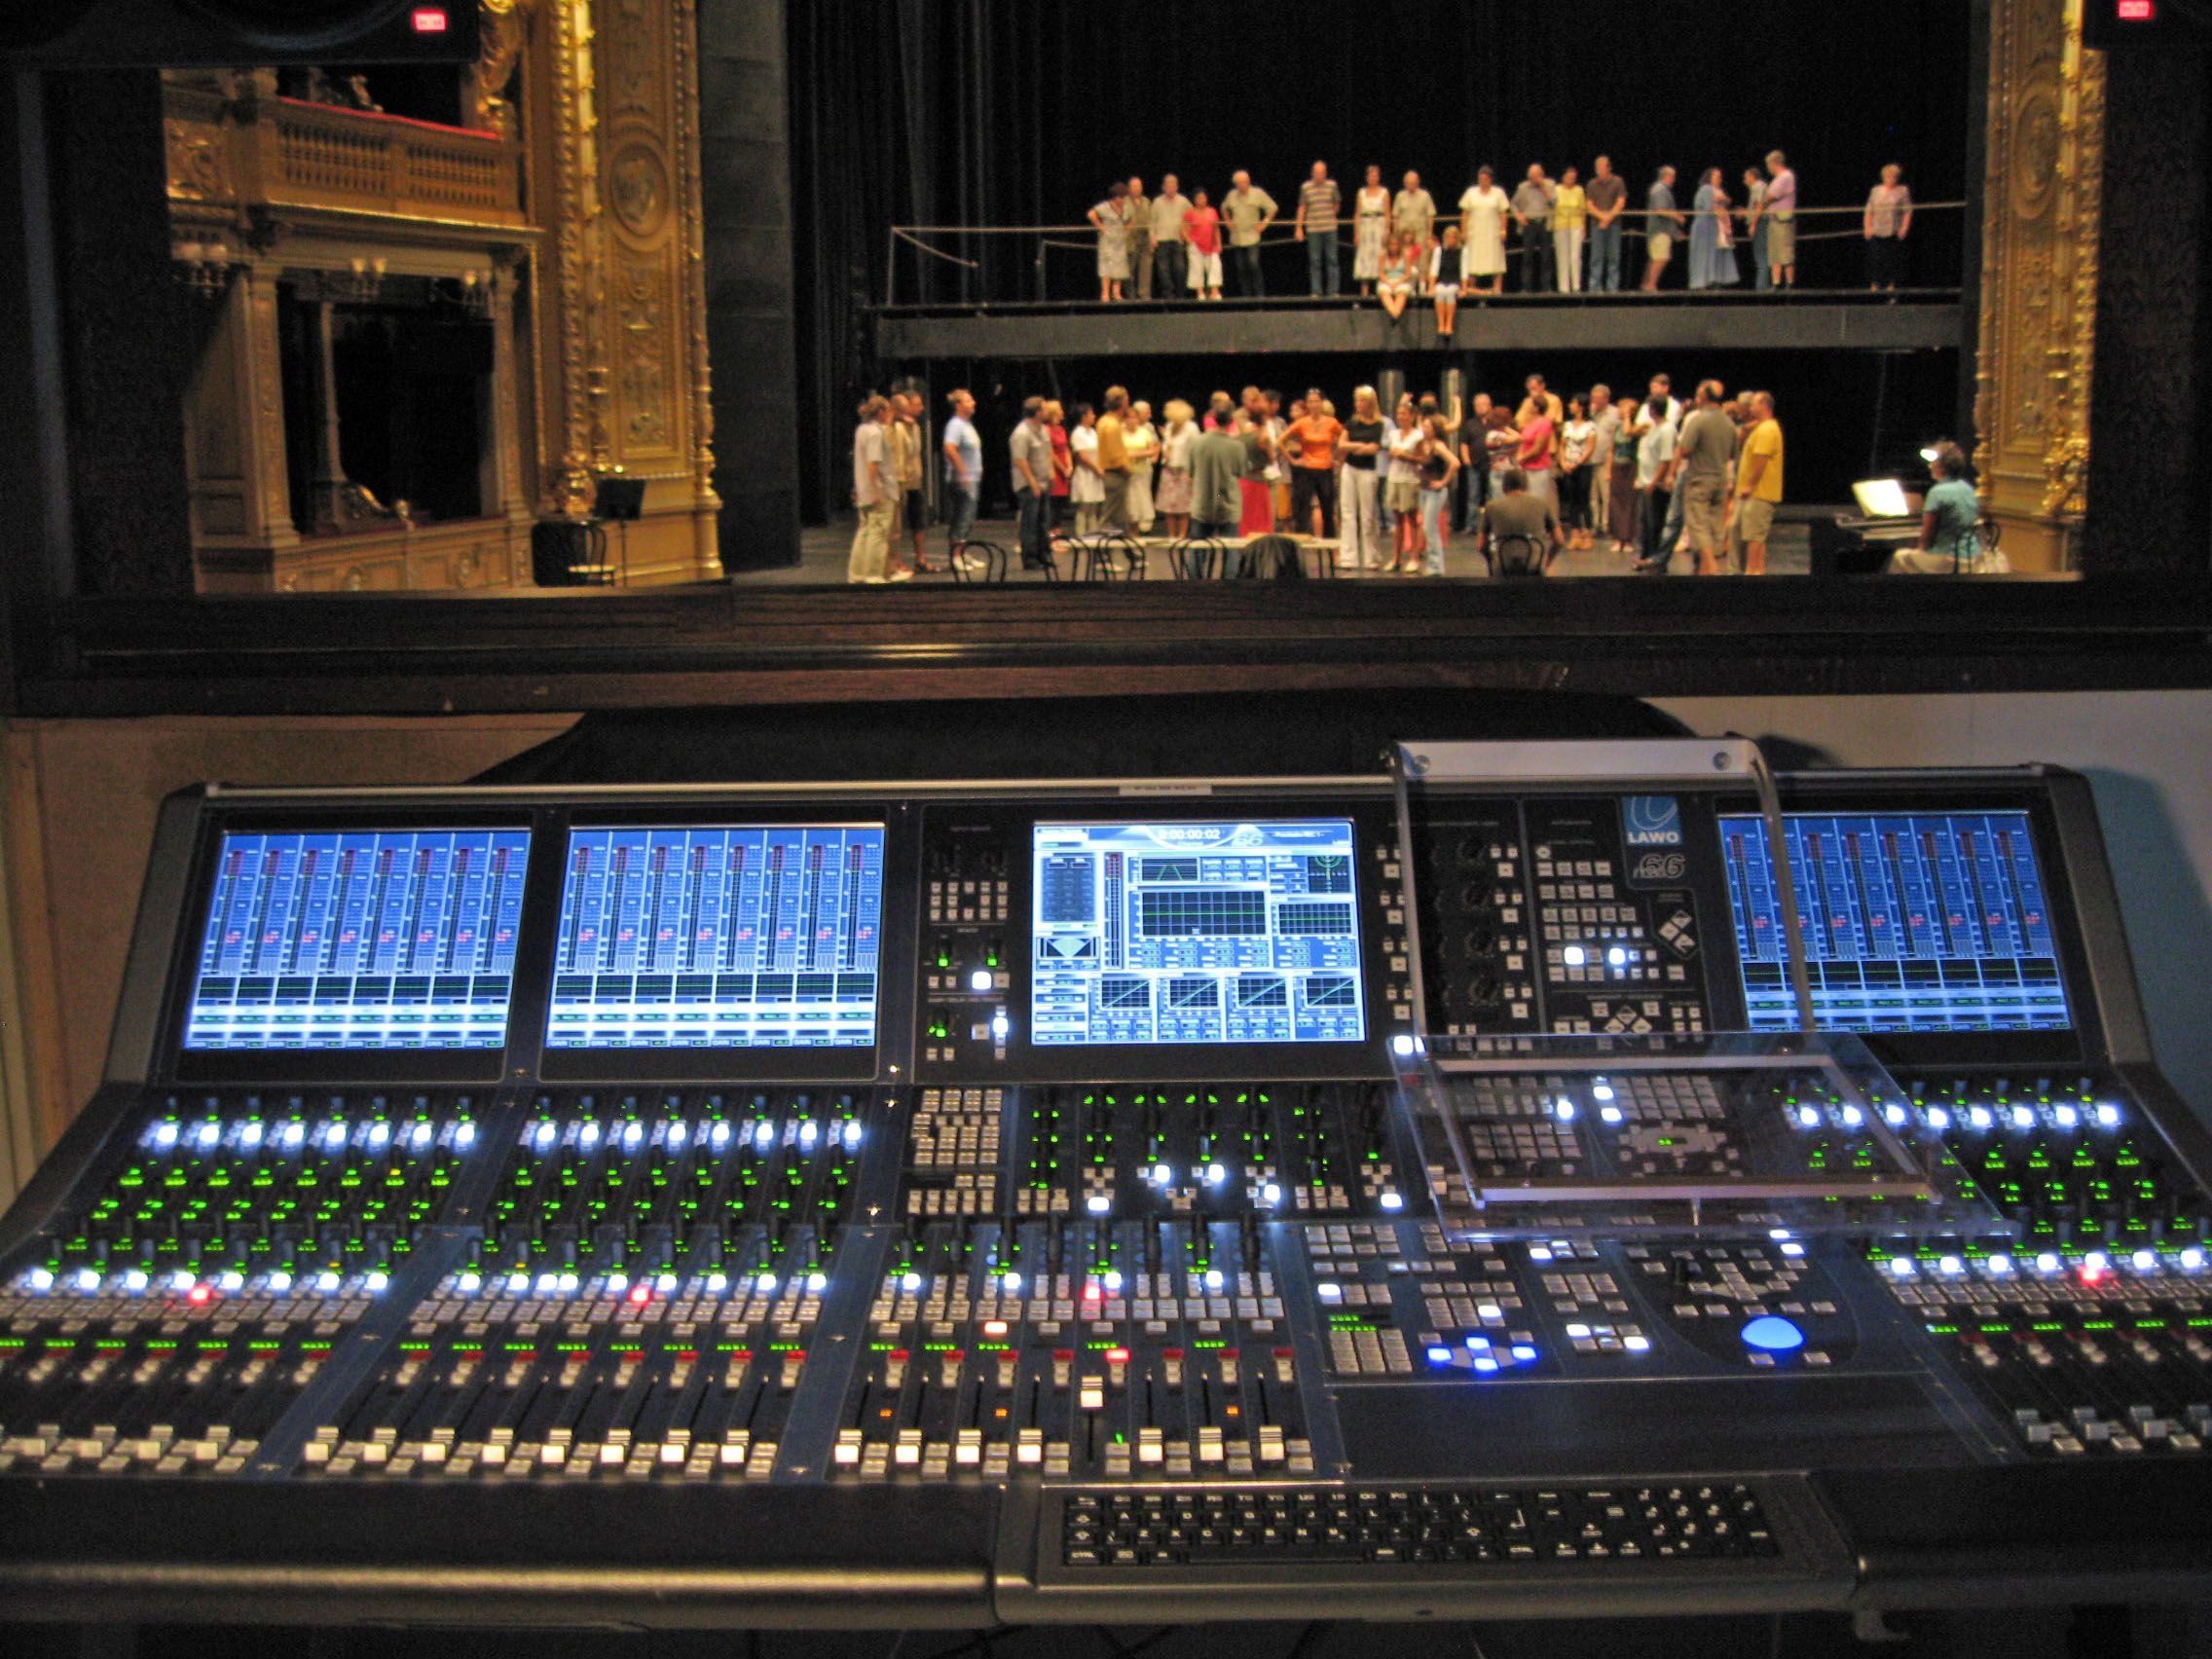 10Year Career work the soundboard on a bigtime show